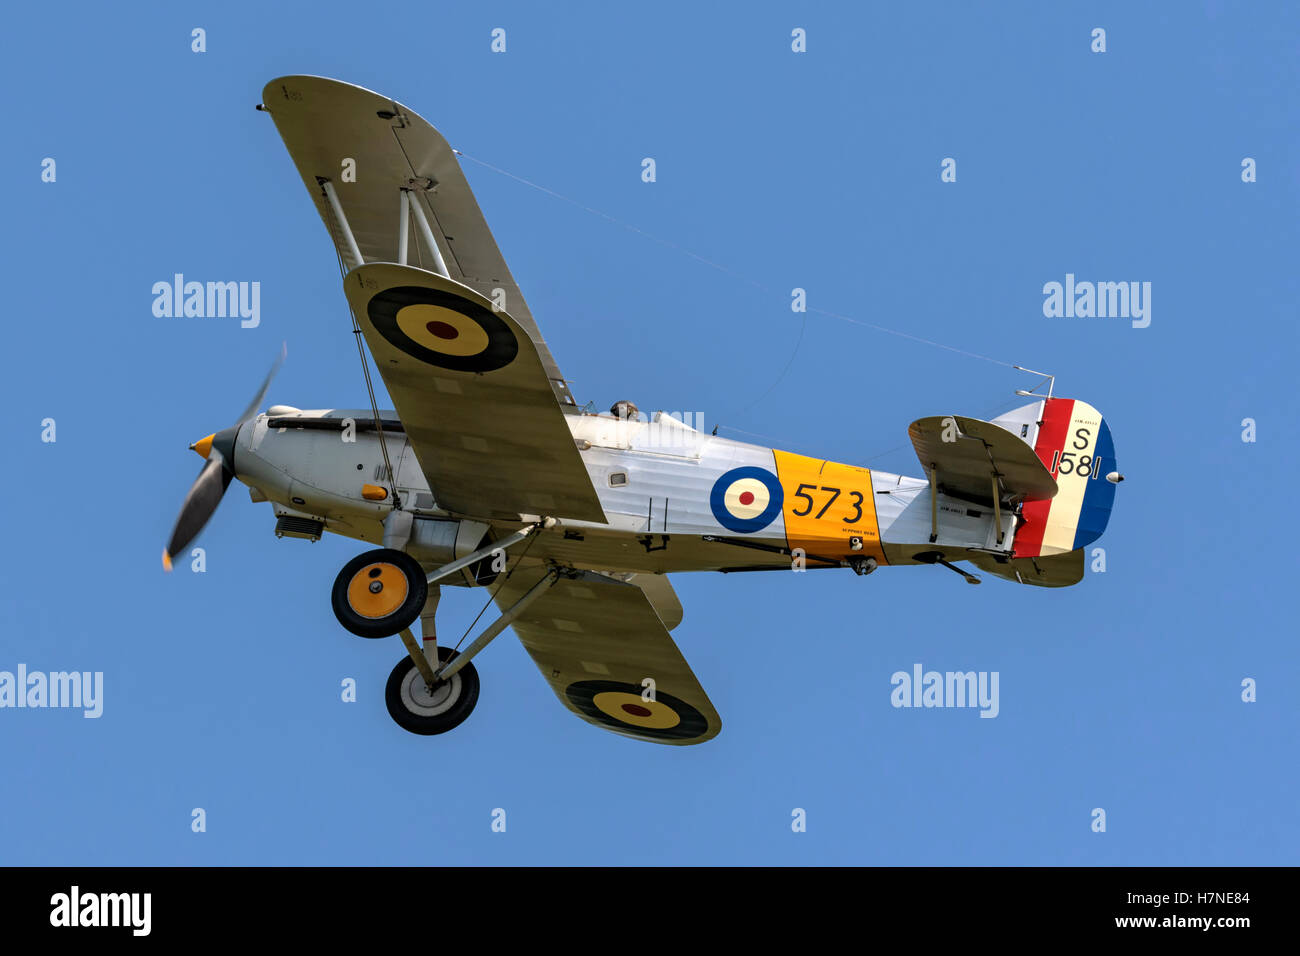 Hawker Hind series one - Stock Image